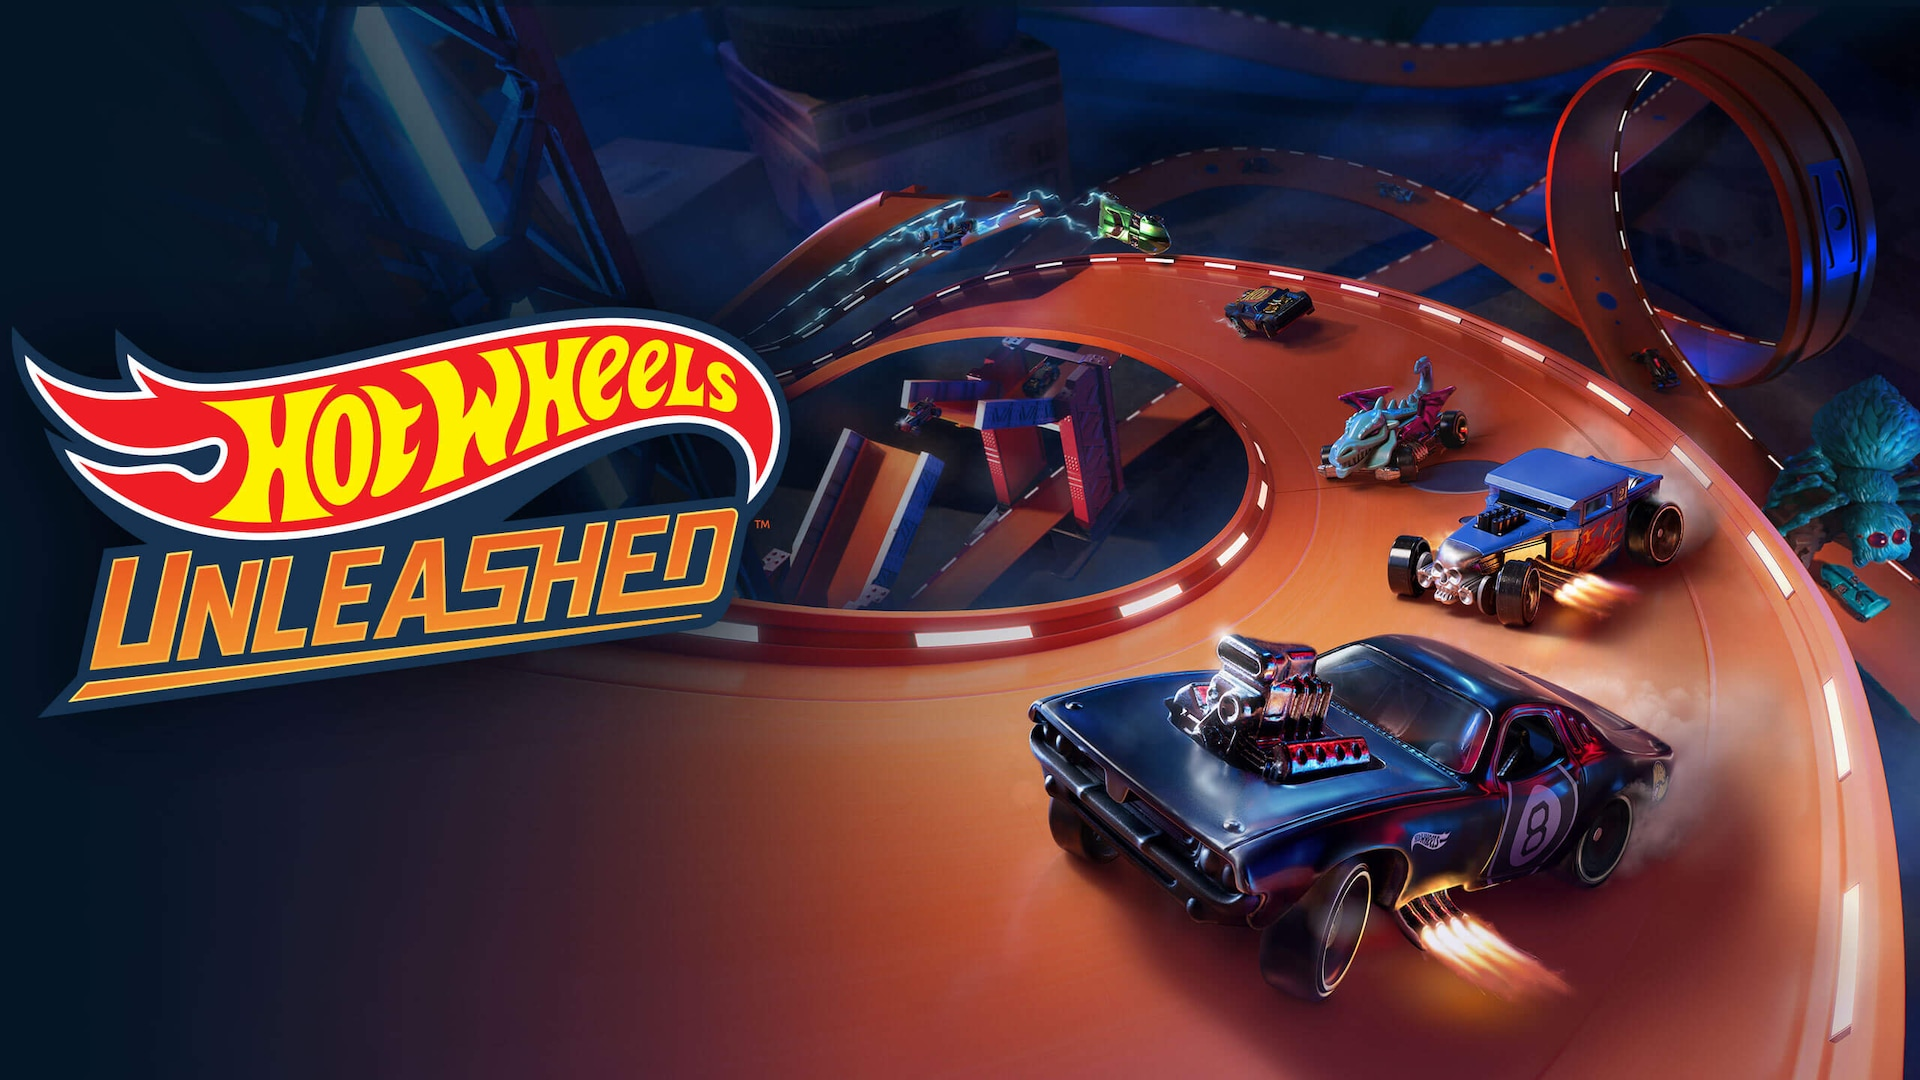 Pre-purchase Hot Wheels Unleashed on Epic Games Store